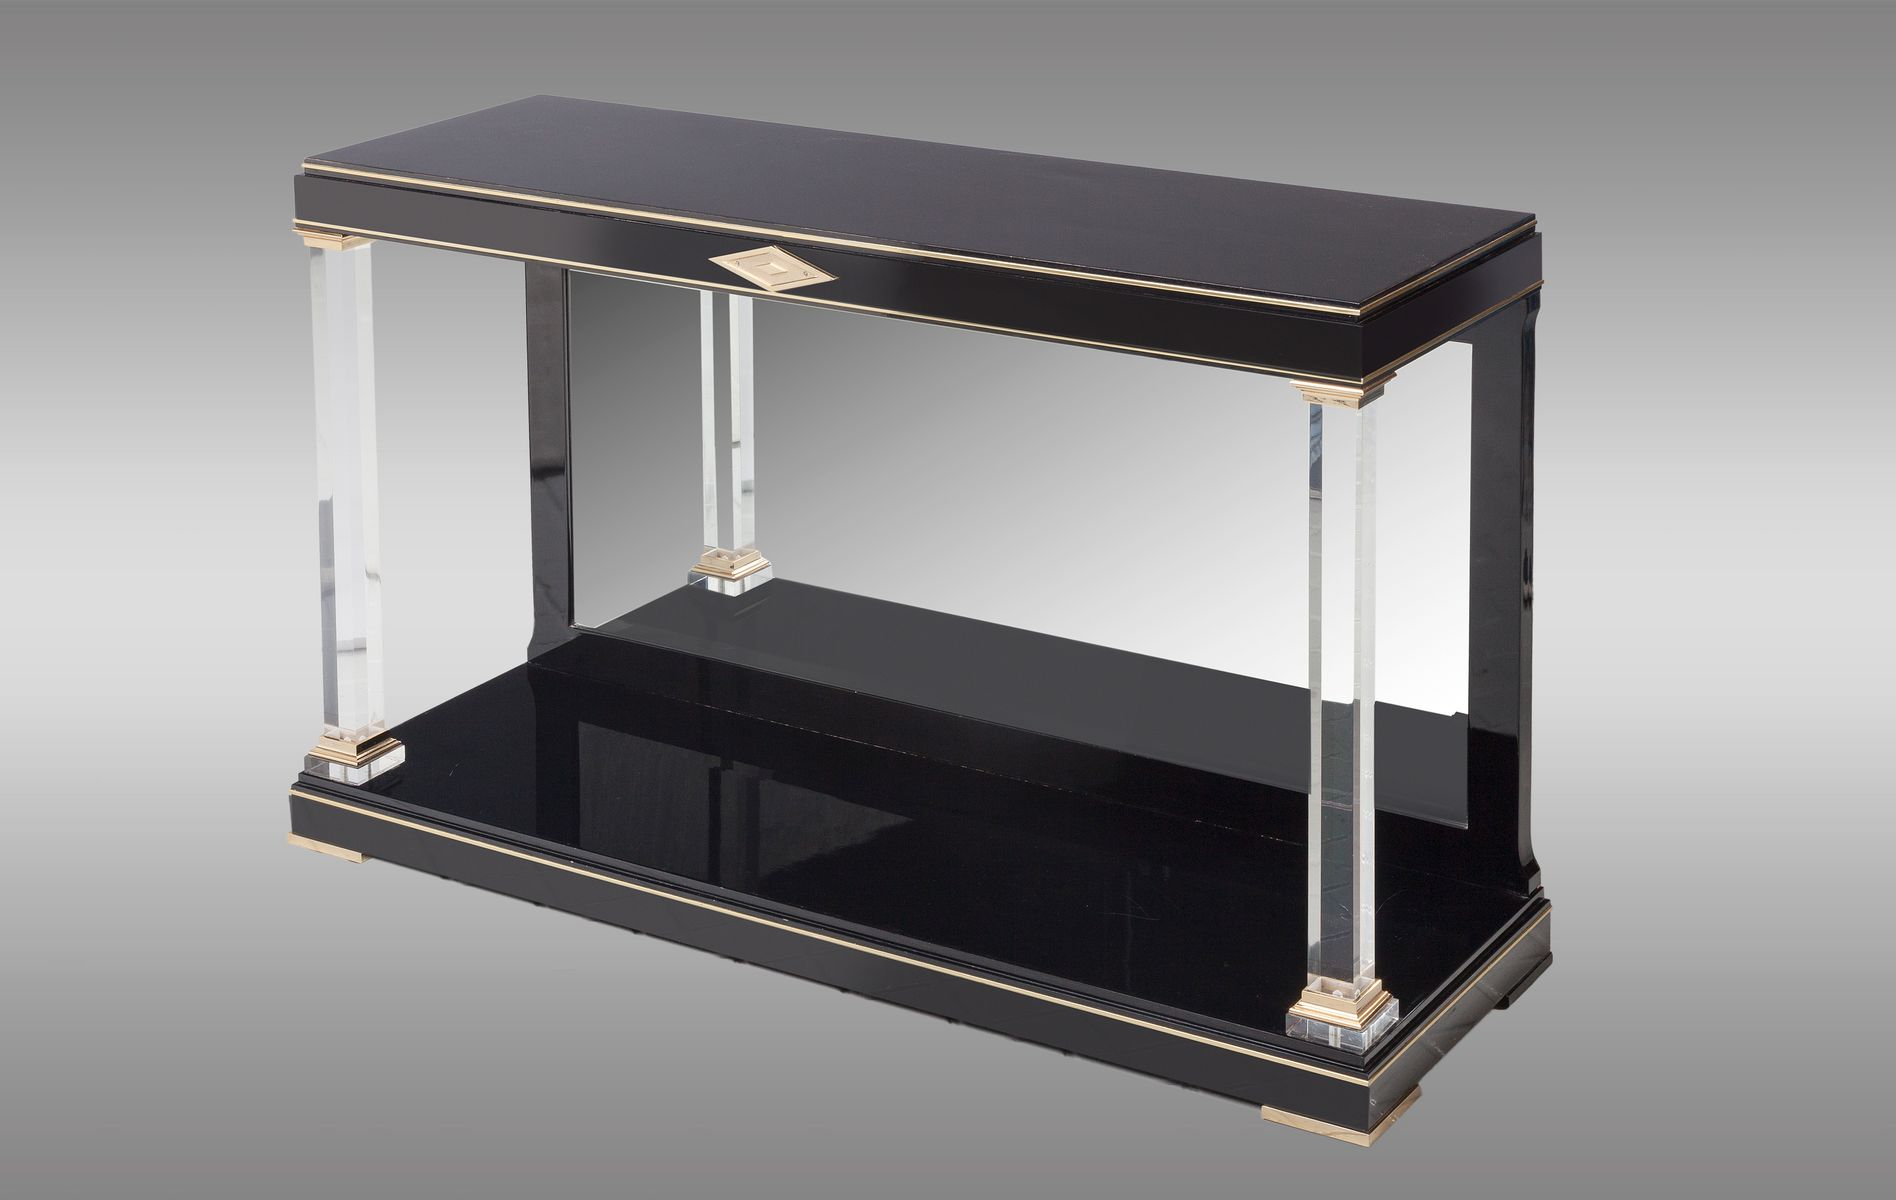 table console noire avec dos en miroir 1970s en vente sur pamono. Black Bedroom Furniture Sets. Home Design Ideas